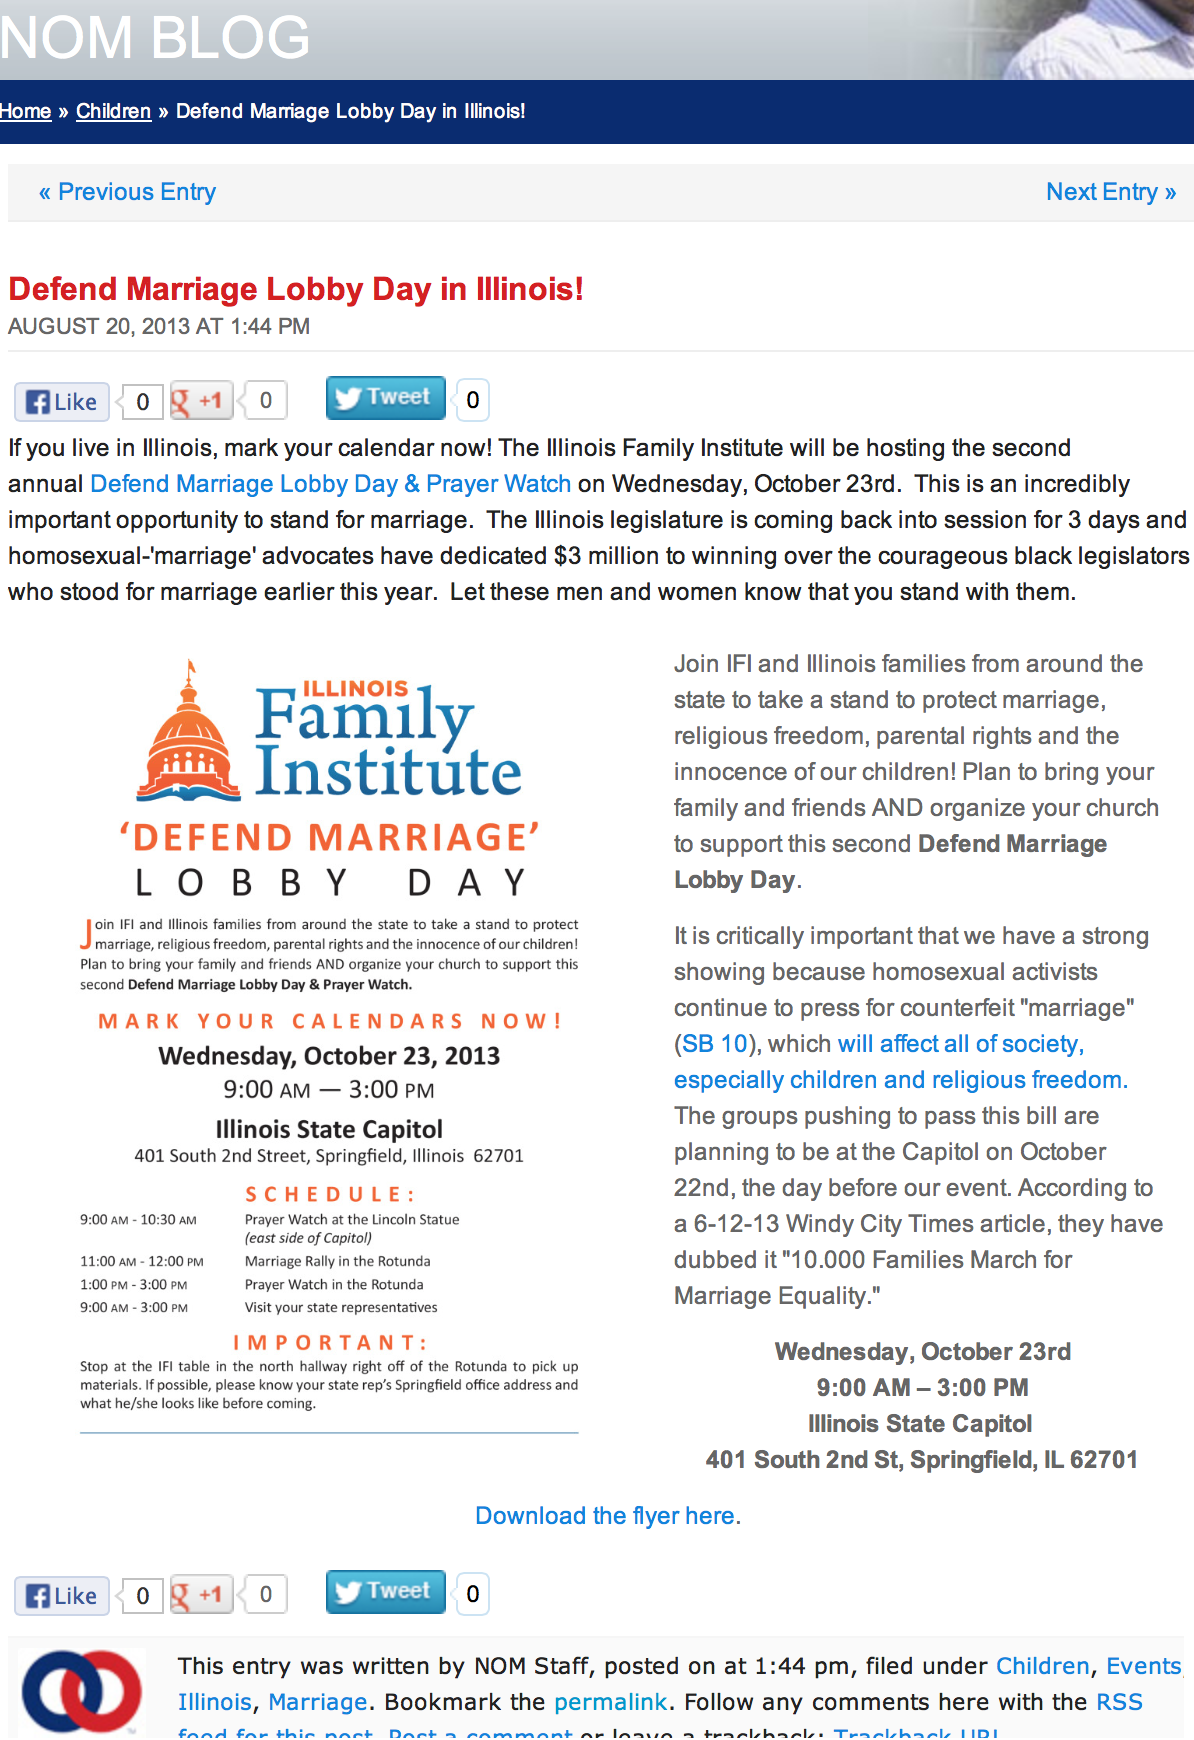 National Organization for Marriage blog